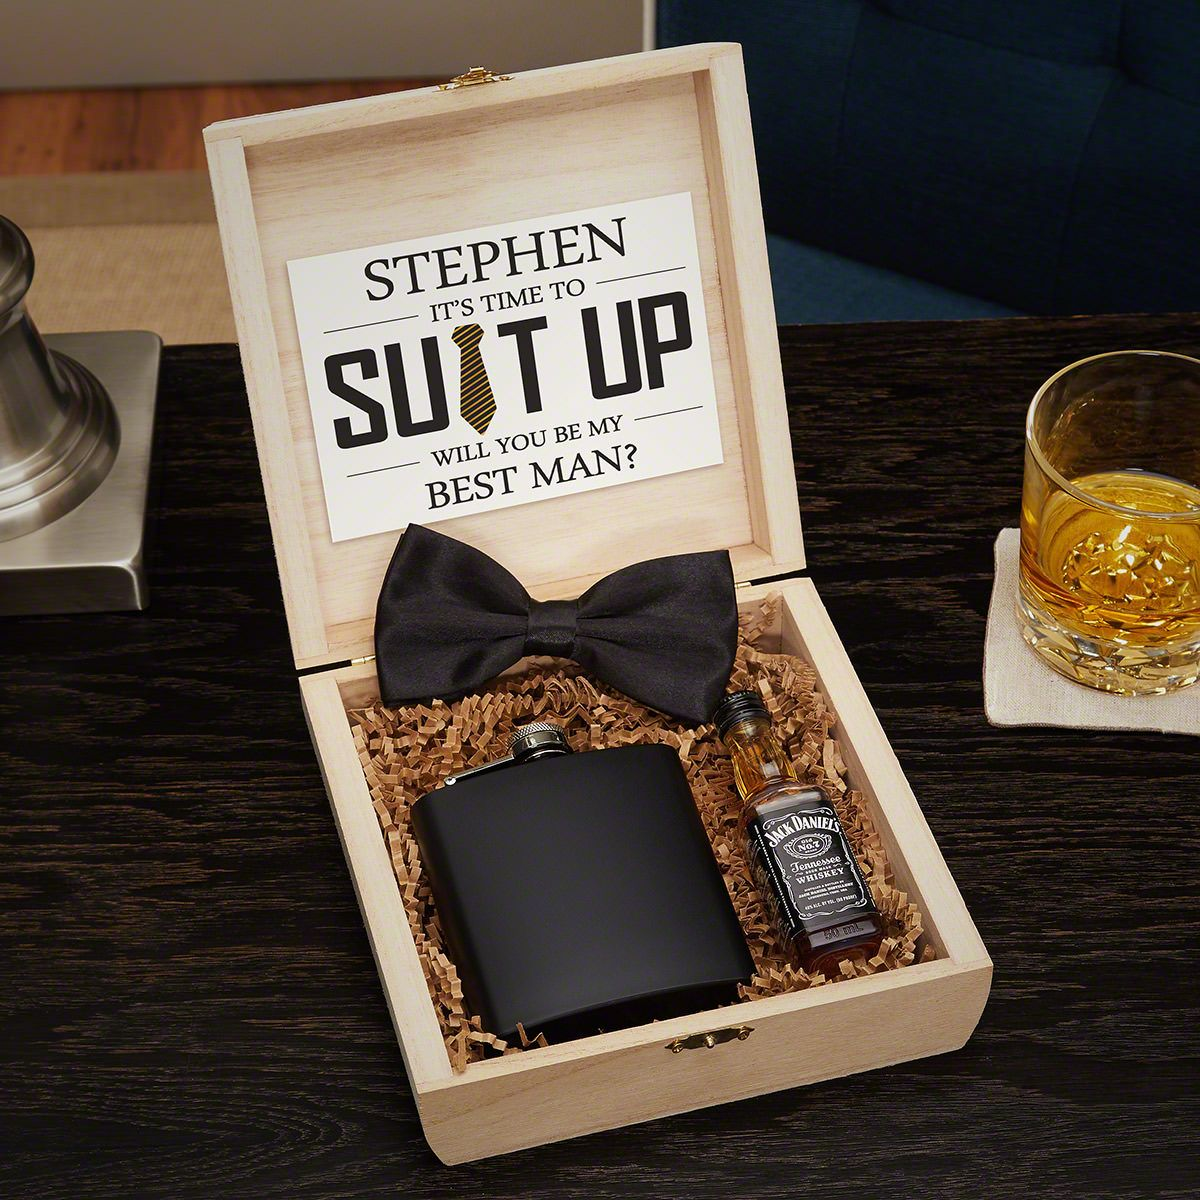 Top Wedding Gift Ideas: Personalized Groomsmen Gifts And Wooden Crate Set